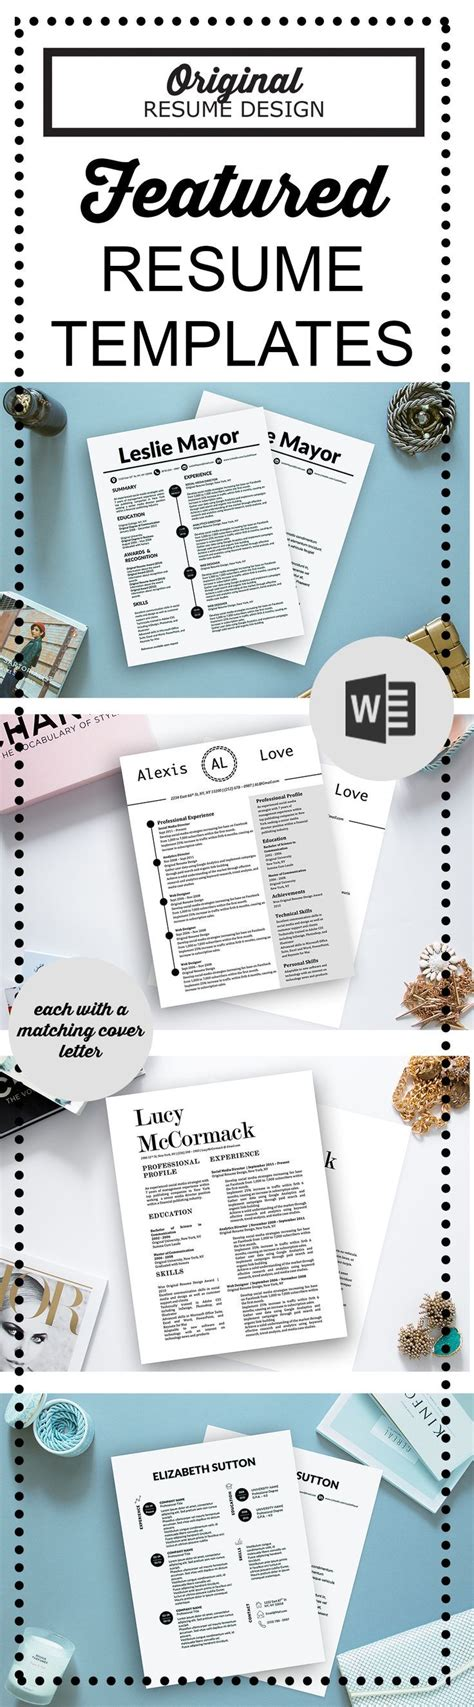 featured resume templates for microsoft word by original